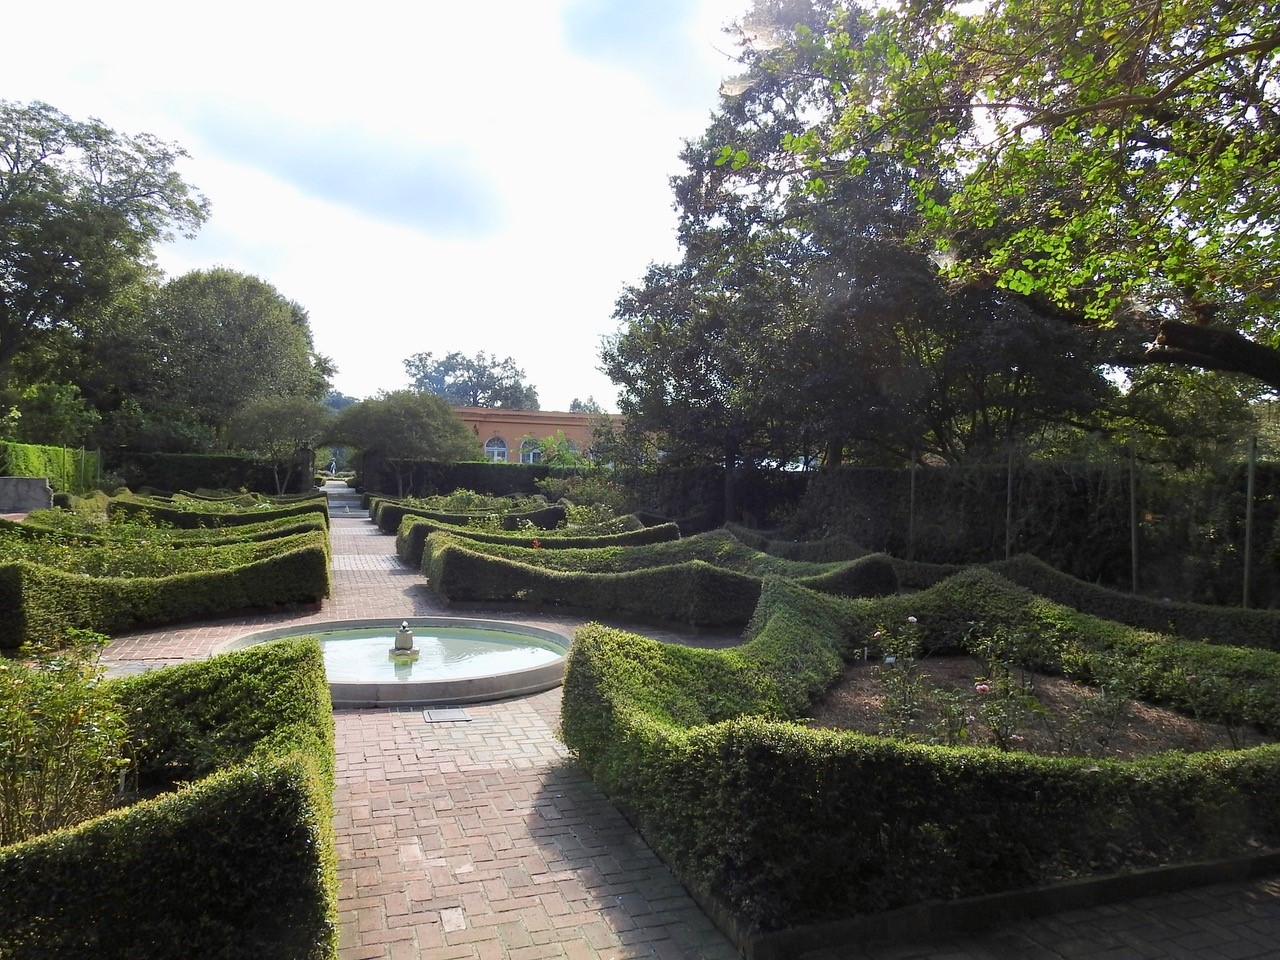 Yaupon holly can be trained as hedges in a formal gardens as a sutible replacement for litlleleaf boxwood-picture credit to Tammany Bumgarten.jpg thumbnail